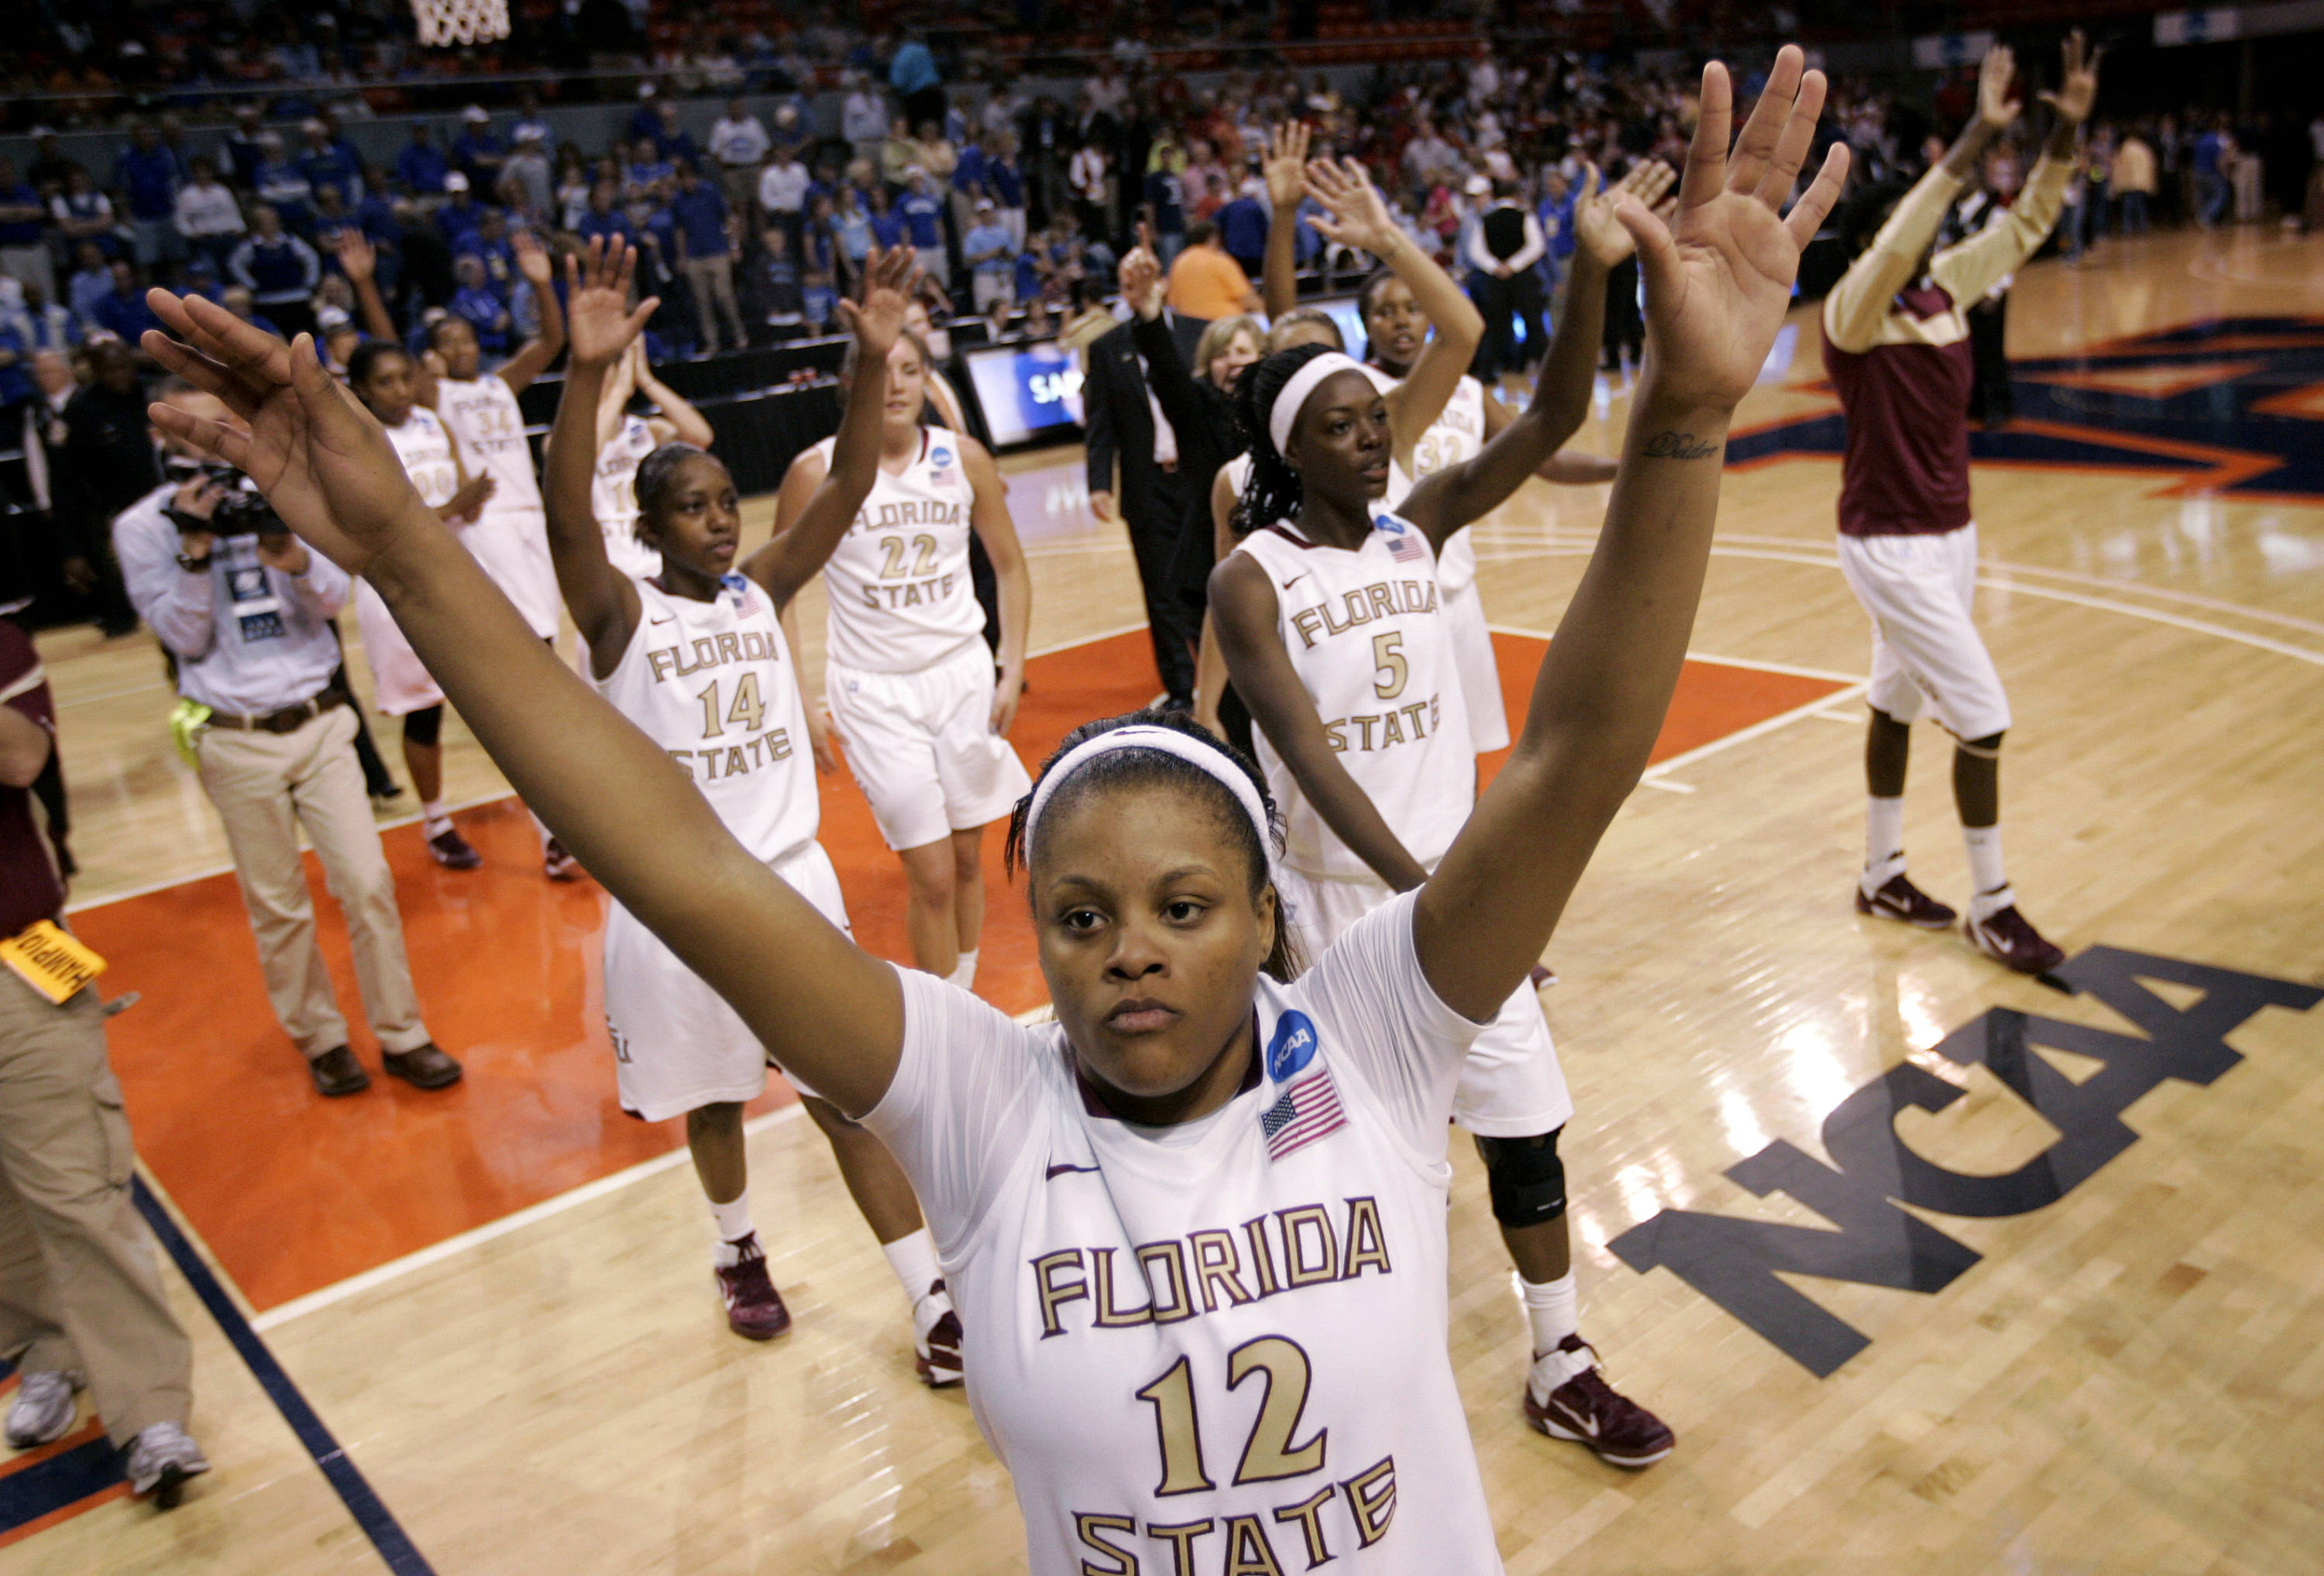 Florida State guard Courtney Ward  reacts at the end of a 76-46 win over Samford in the first round NCAA women's college basketball tournament. (AP Photo/Dave Martin)